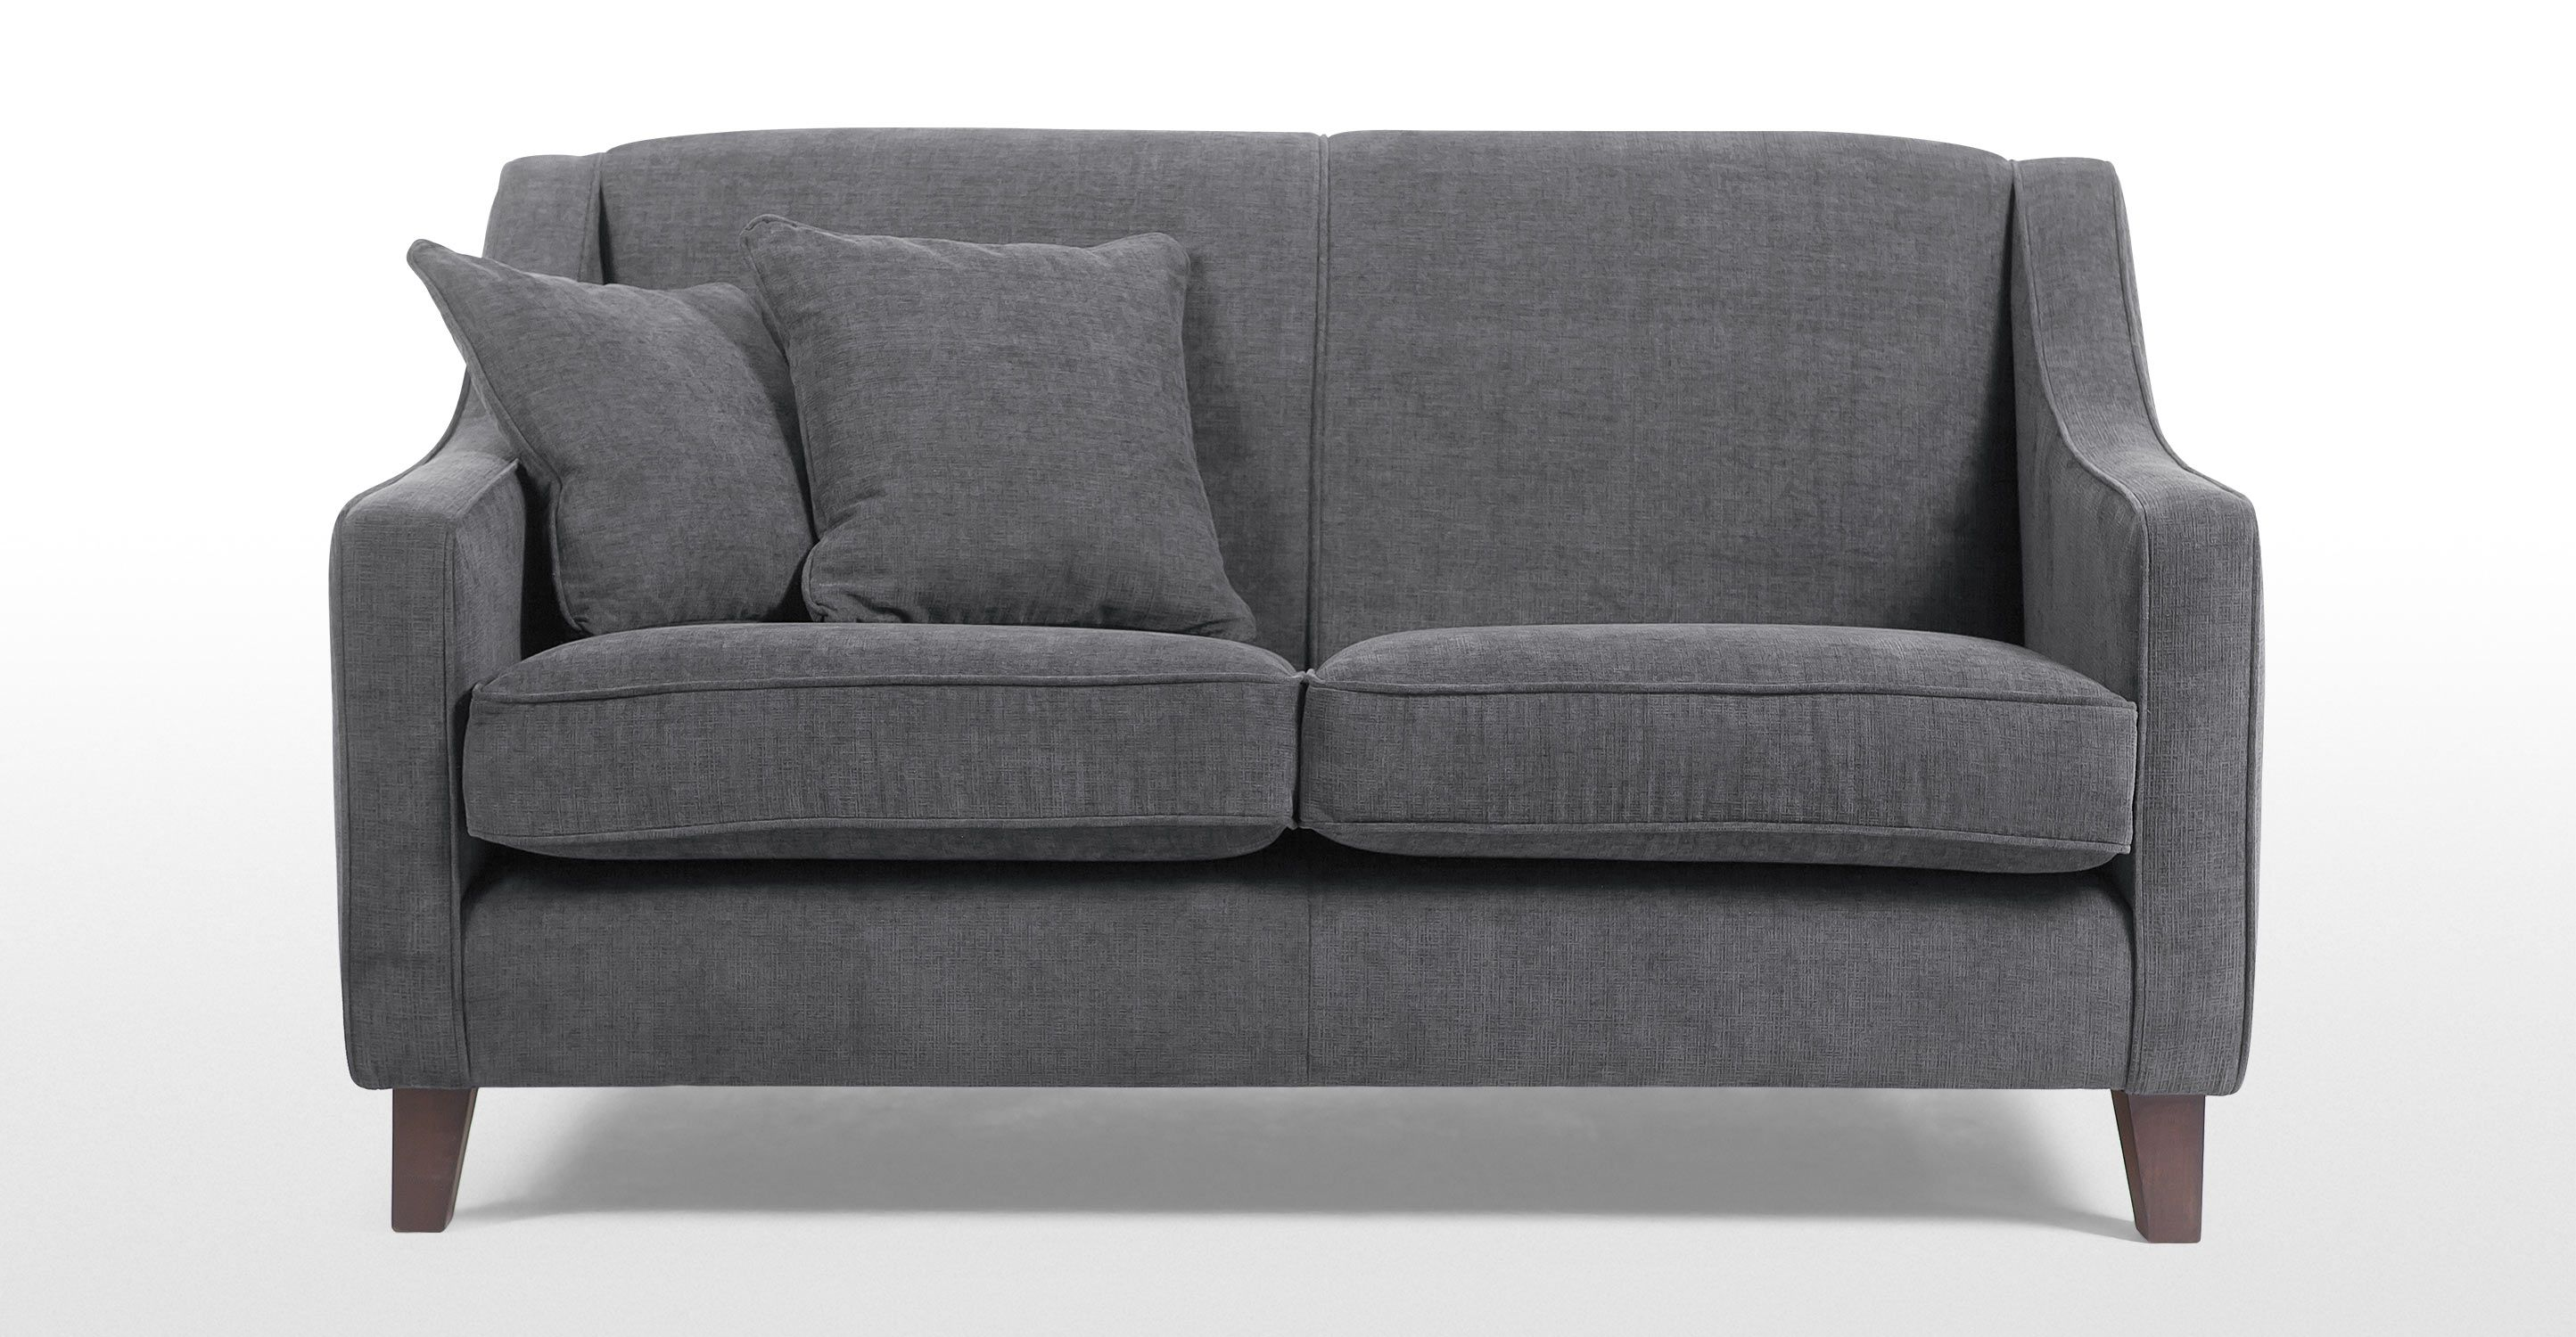 Halston 2 Seater Sofa In Dusk Grey Made